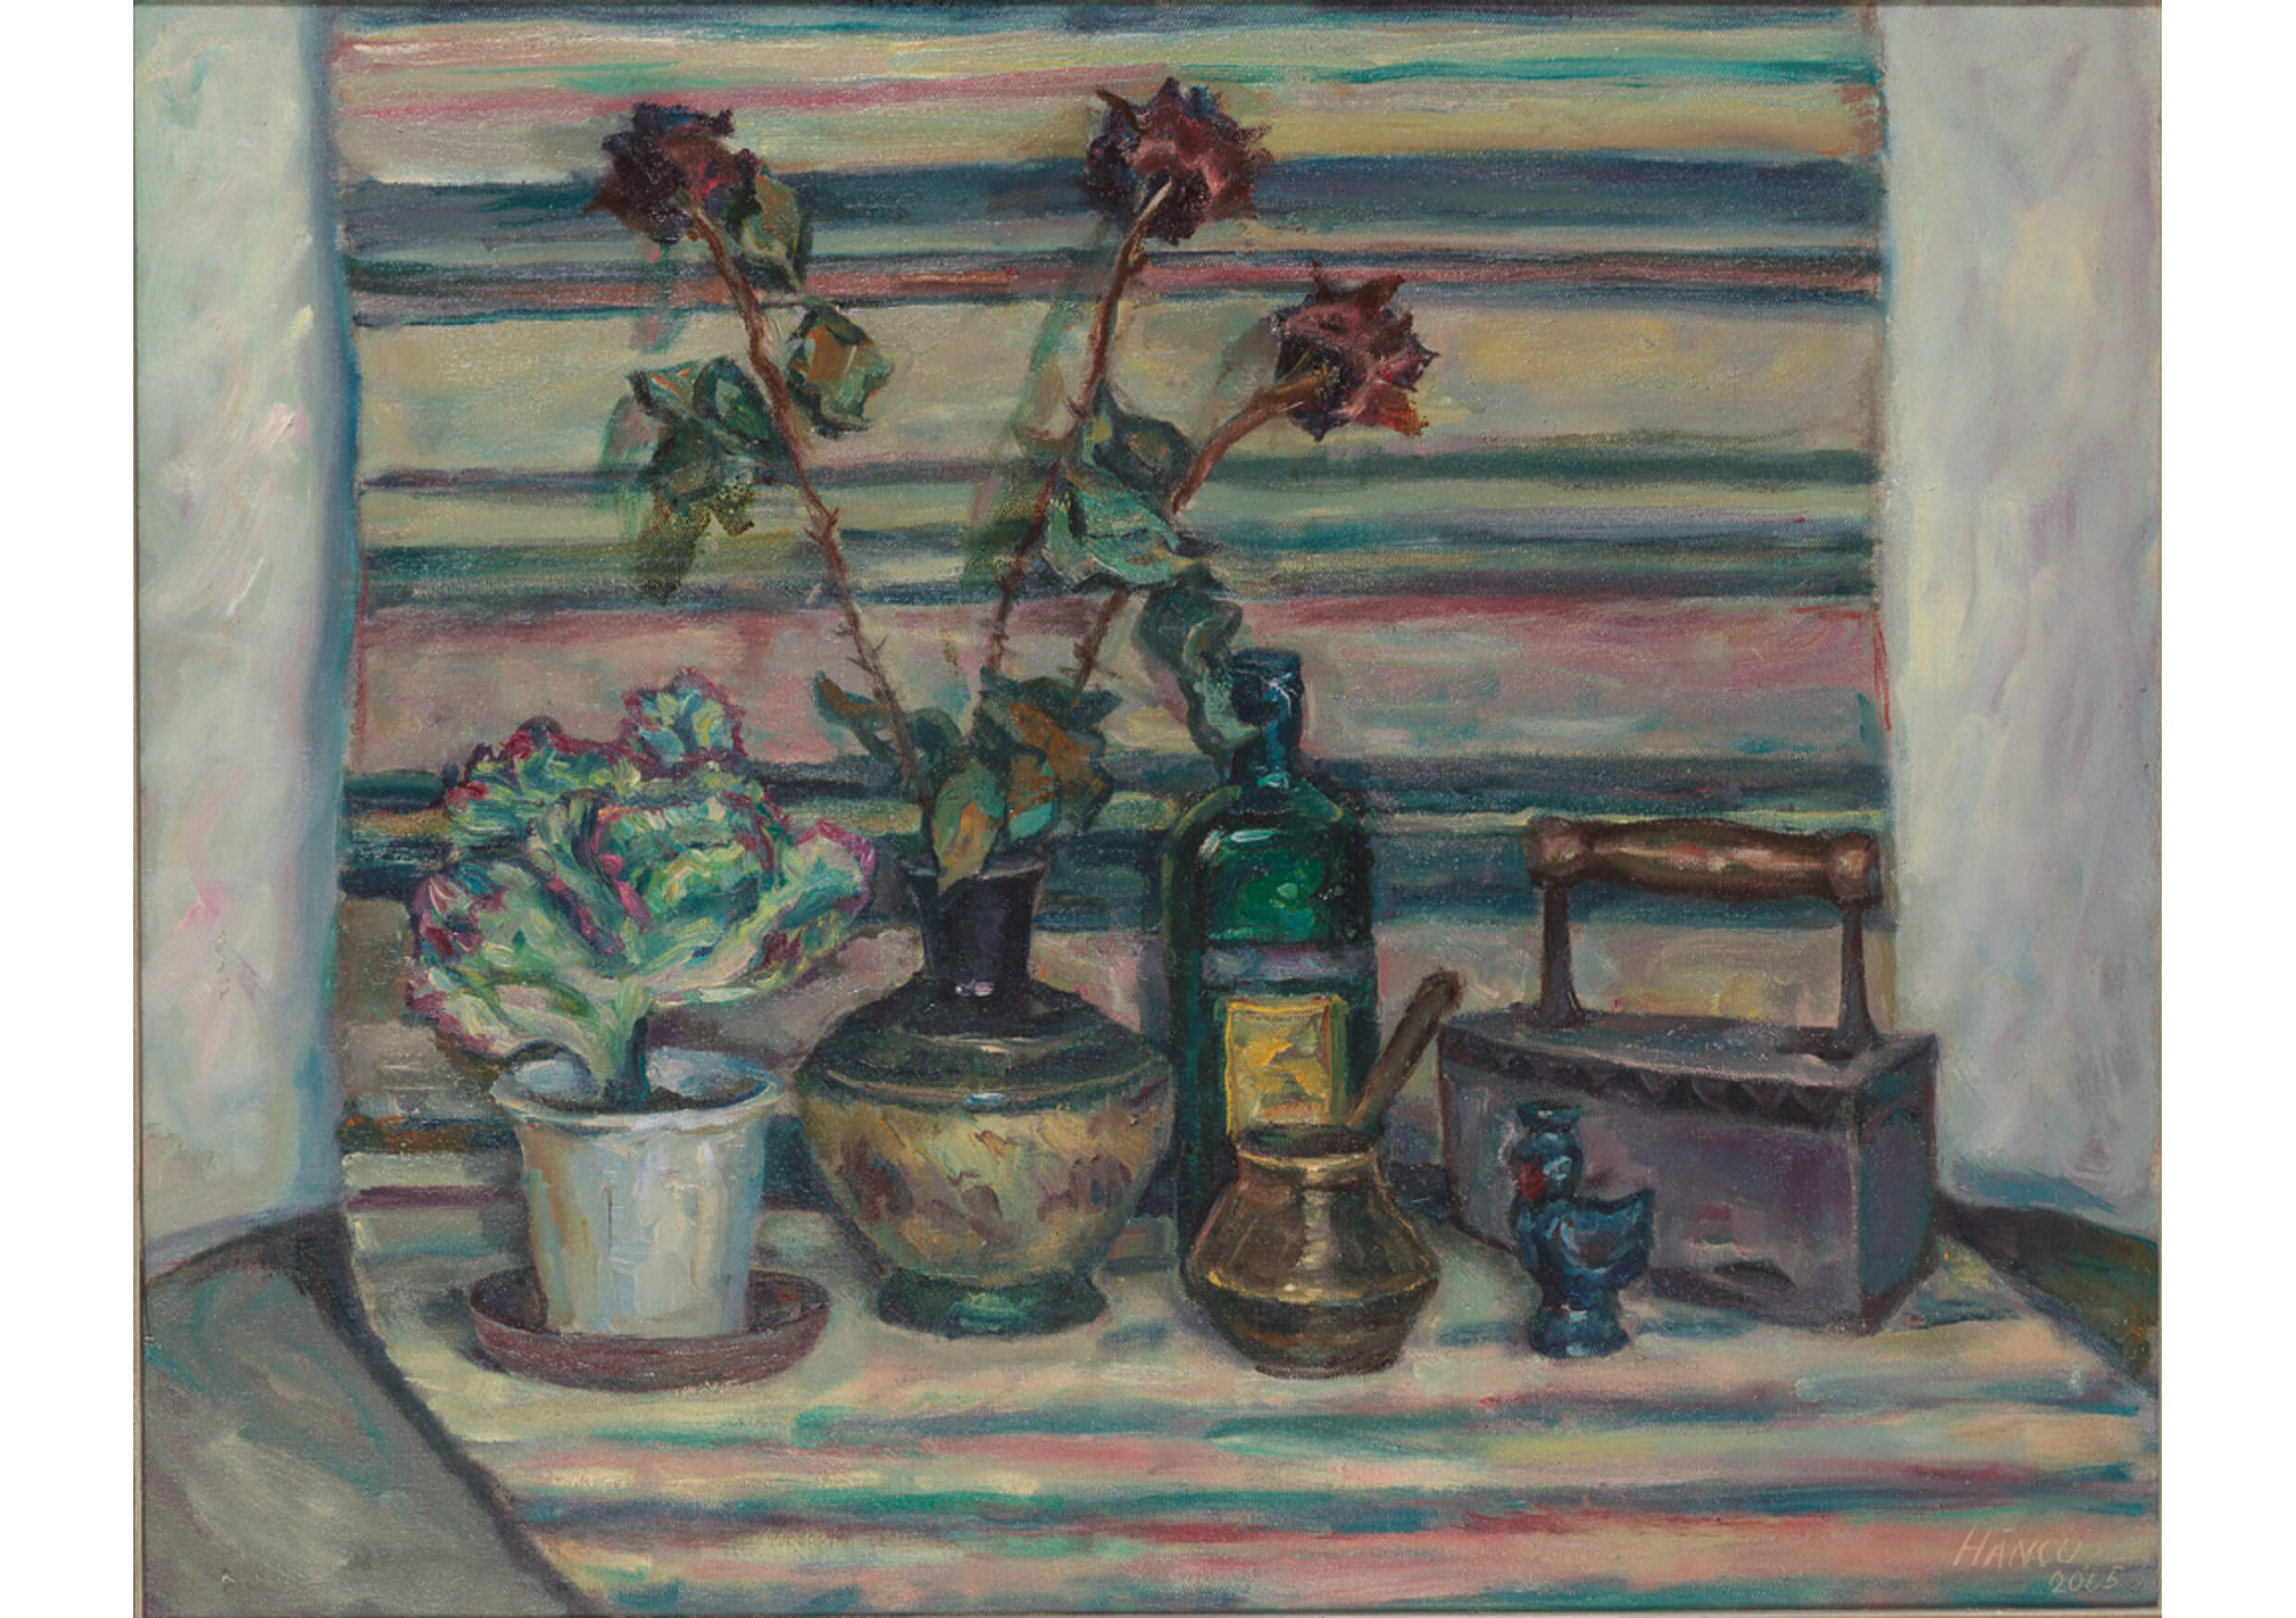 Still Life with Carpet, Oil on canvas, 80 x 100 cm